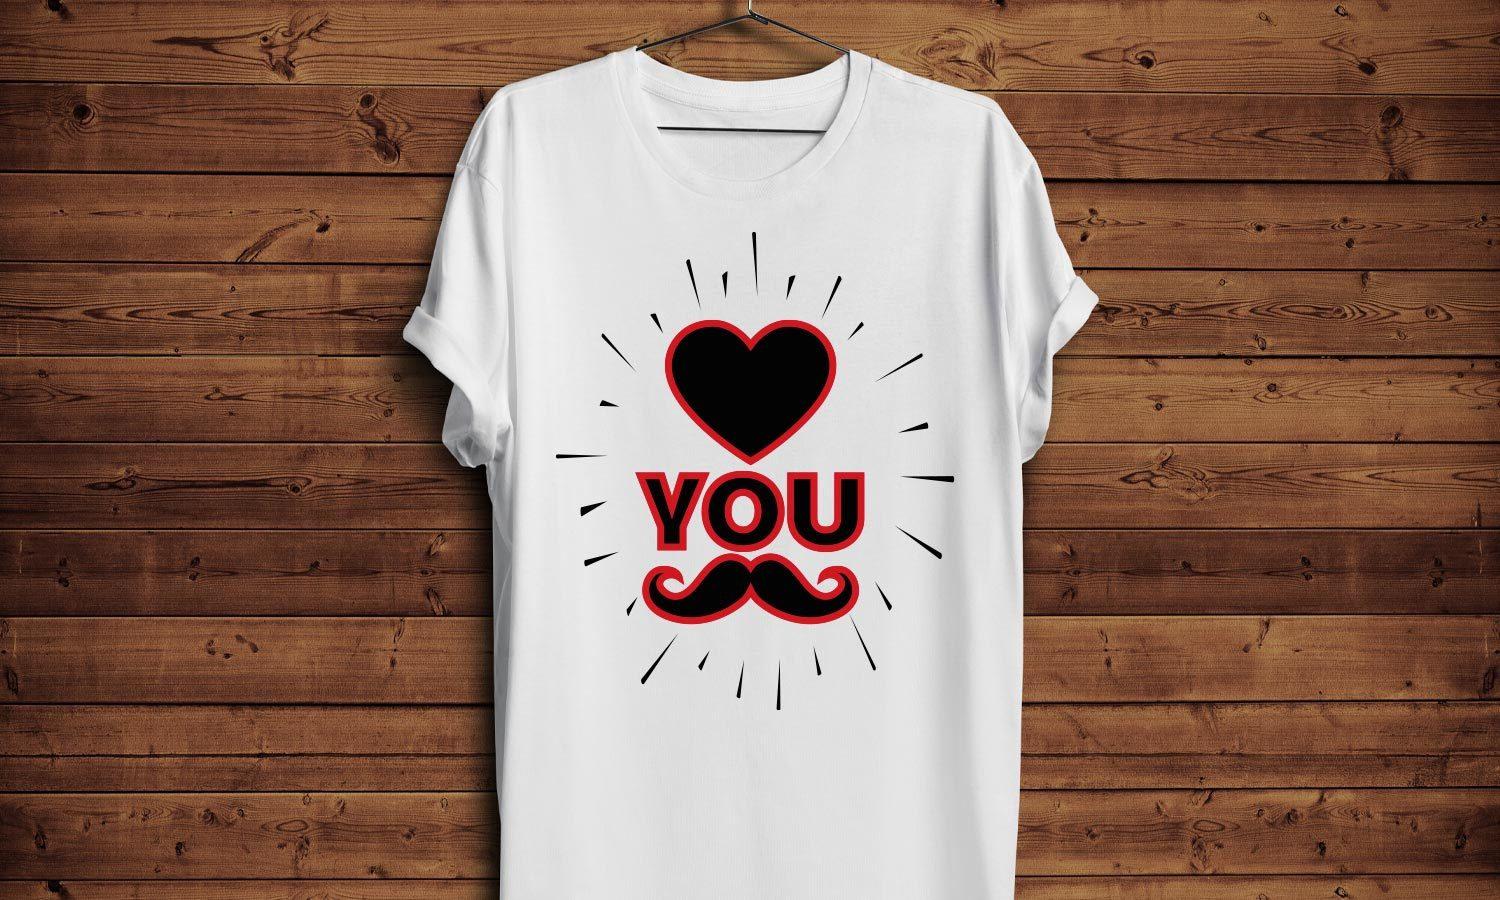 Love You - Printed T-Shirt for Men, Women and Kids - TS255